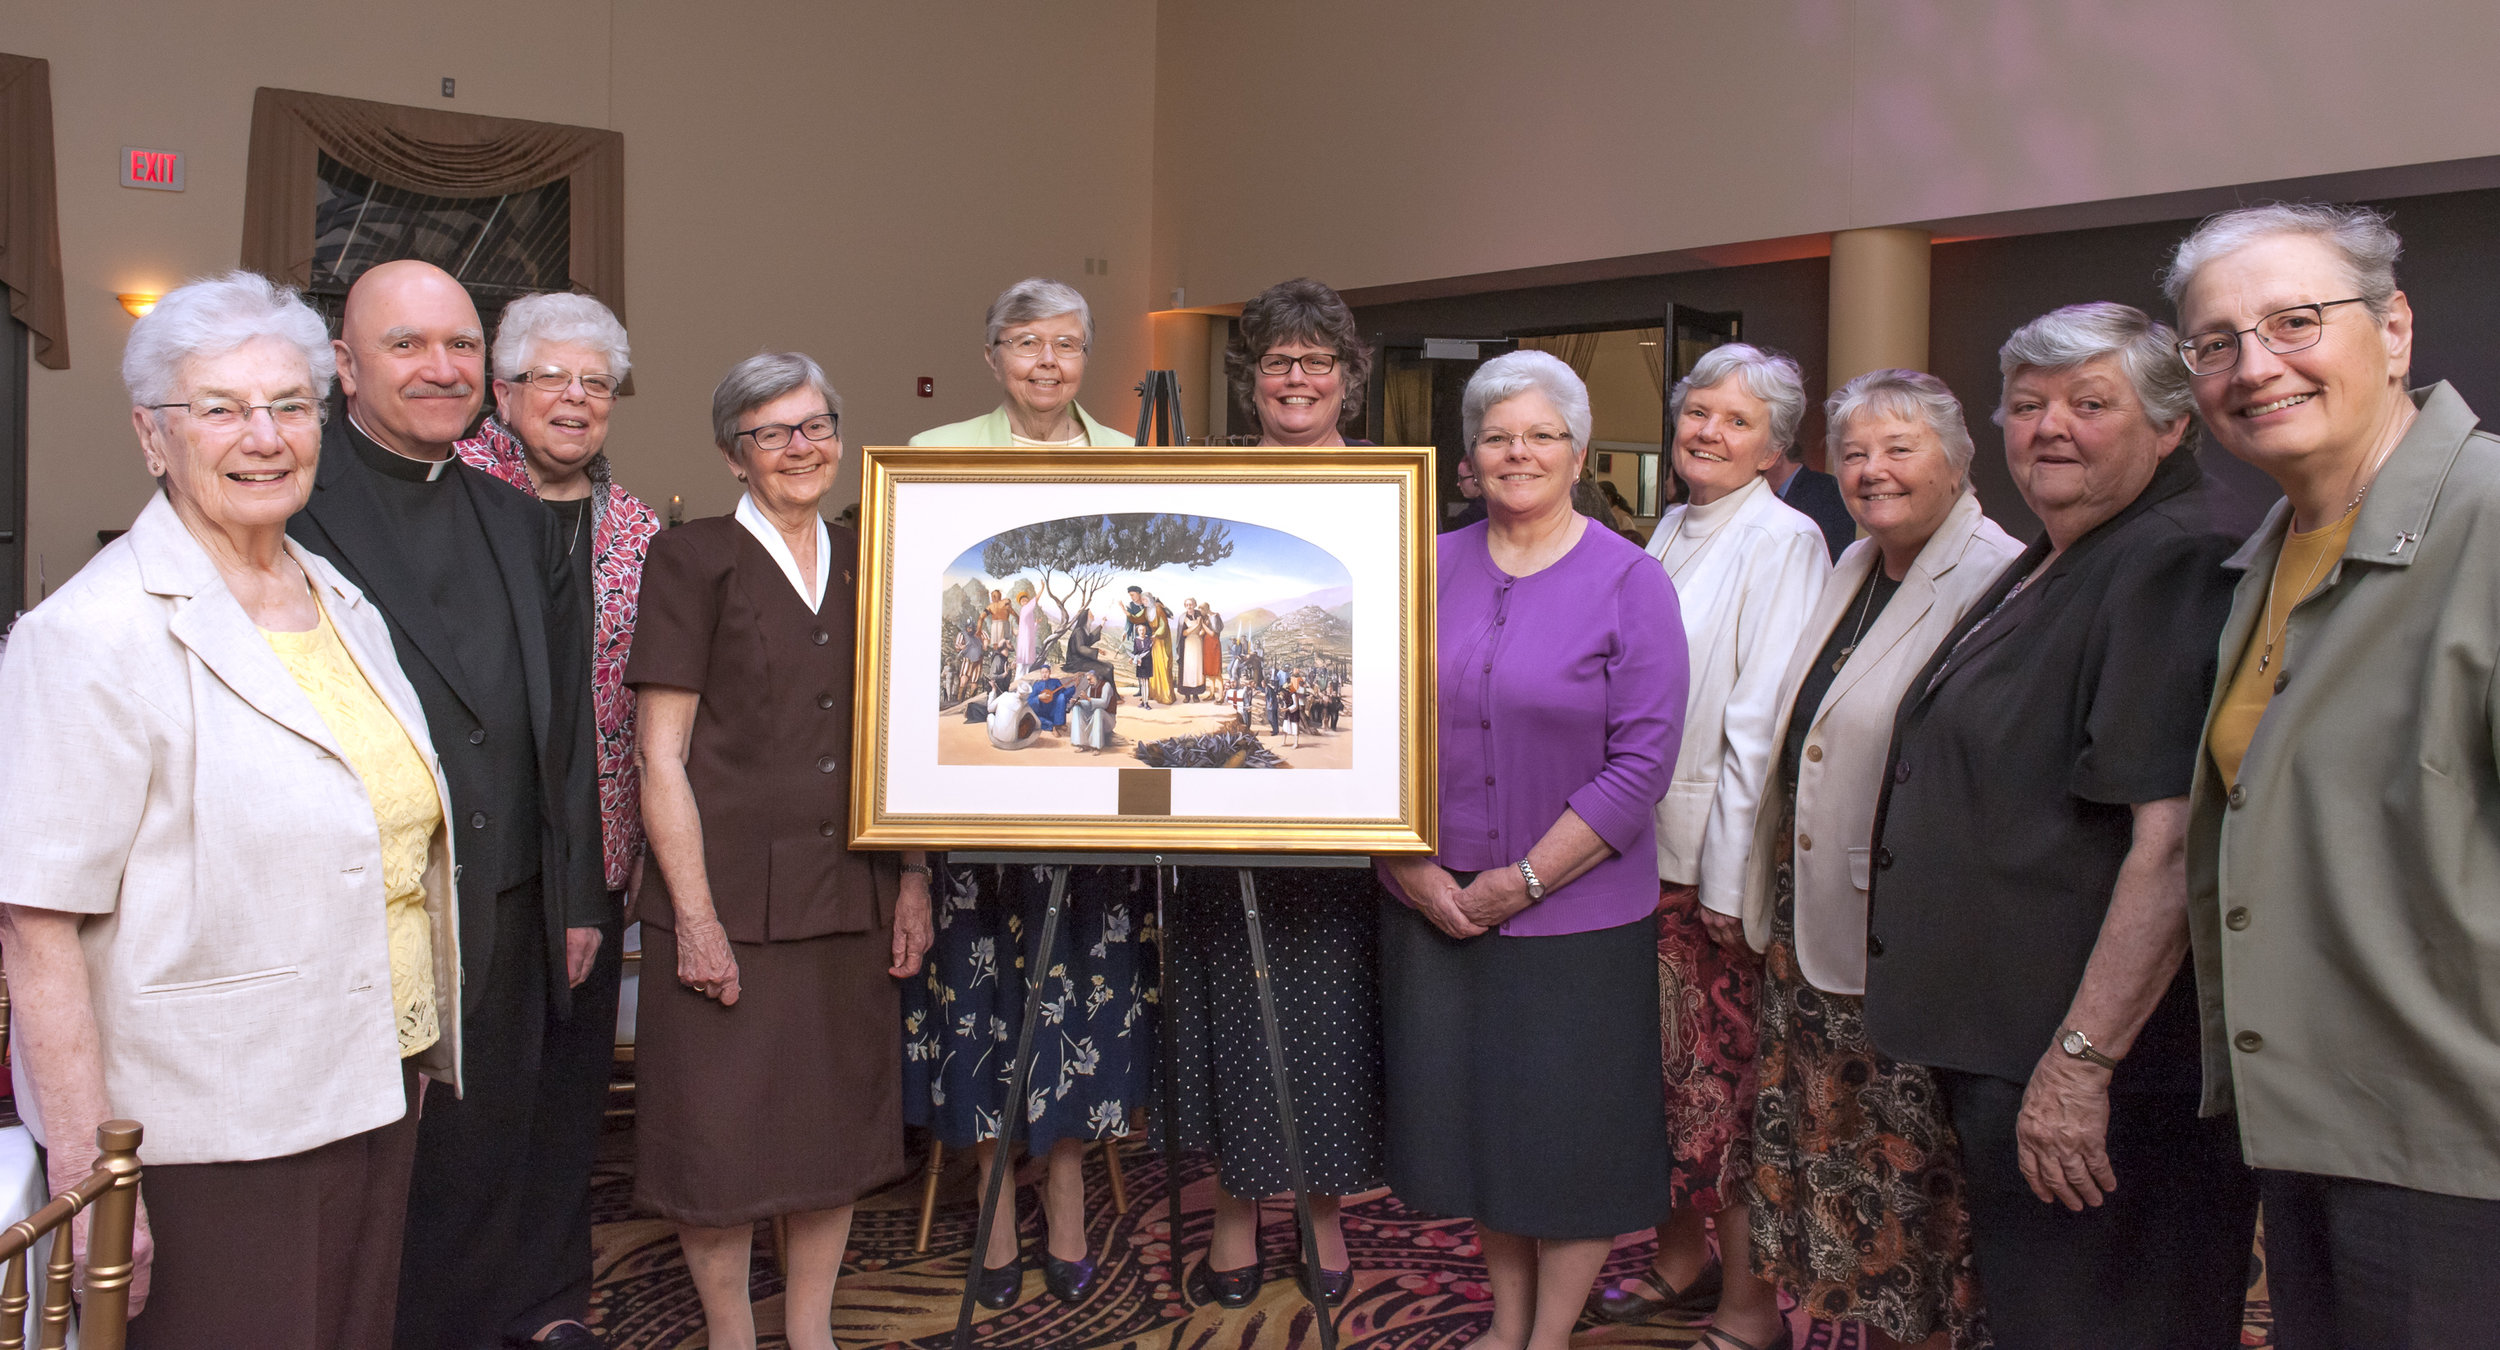 Fr. Joe Genito, OSA (second from left) awarding the Peace Award to Sr. Marie Lucey and the Franciscan Sisters of Philadelphia in 2017.